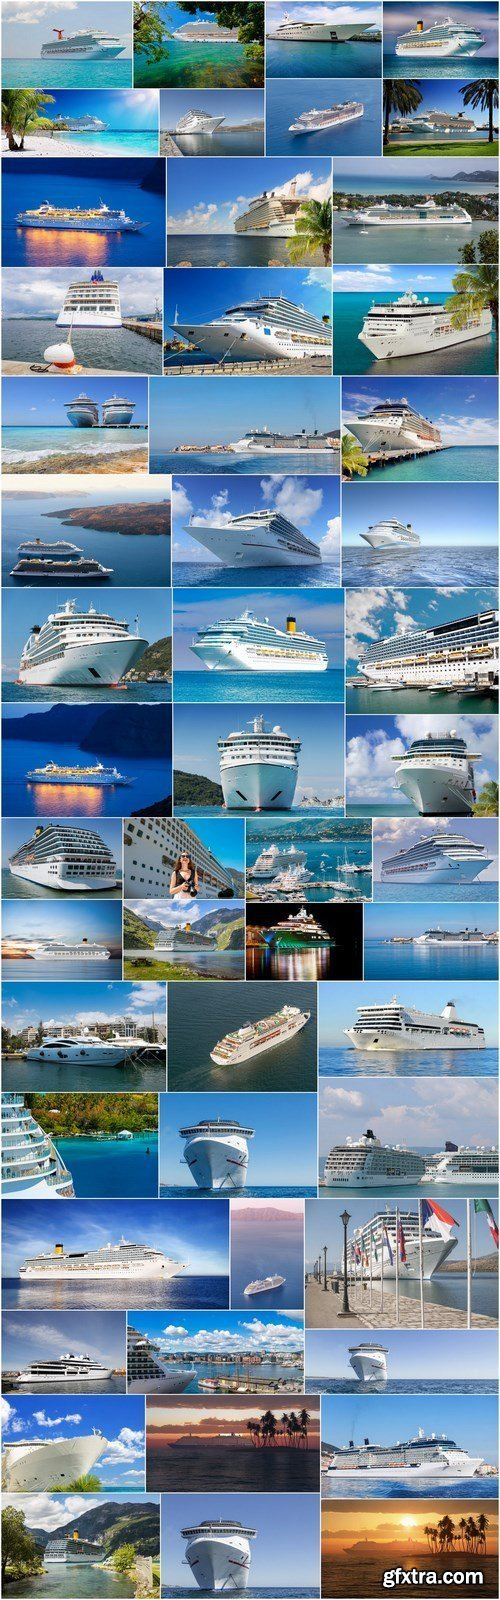 Cruise Lines - Round the World Travel - Set of 52xUHQ JPEG Professional Stock Images